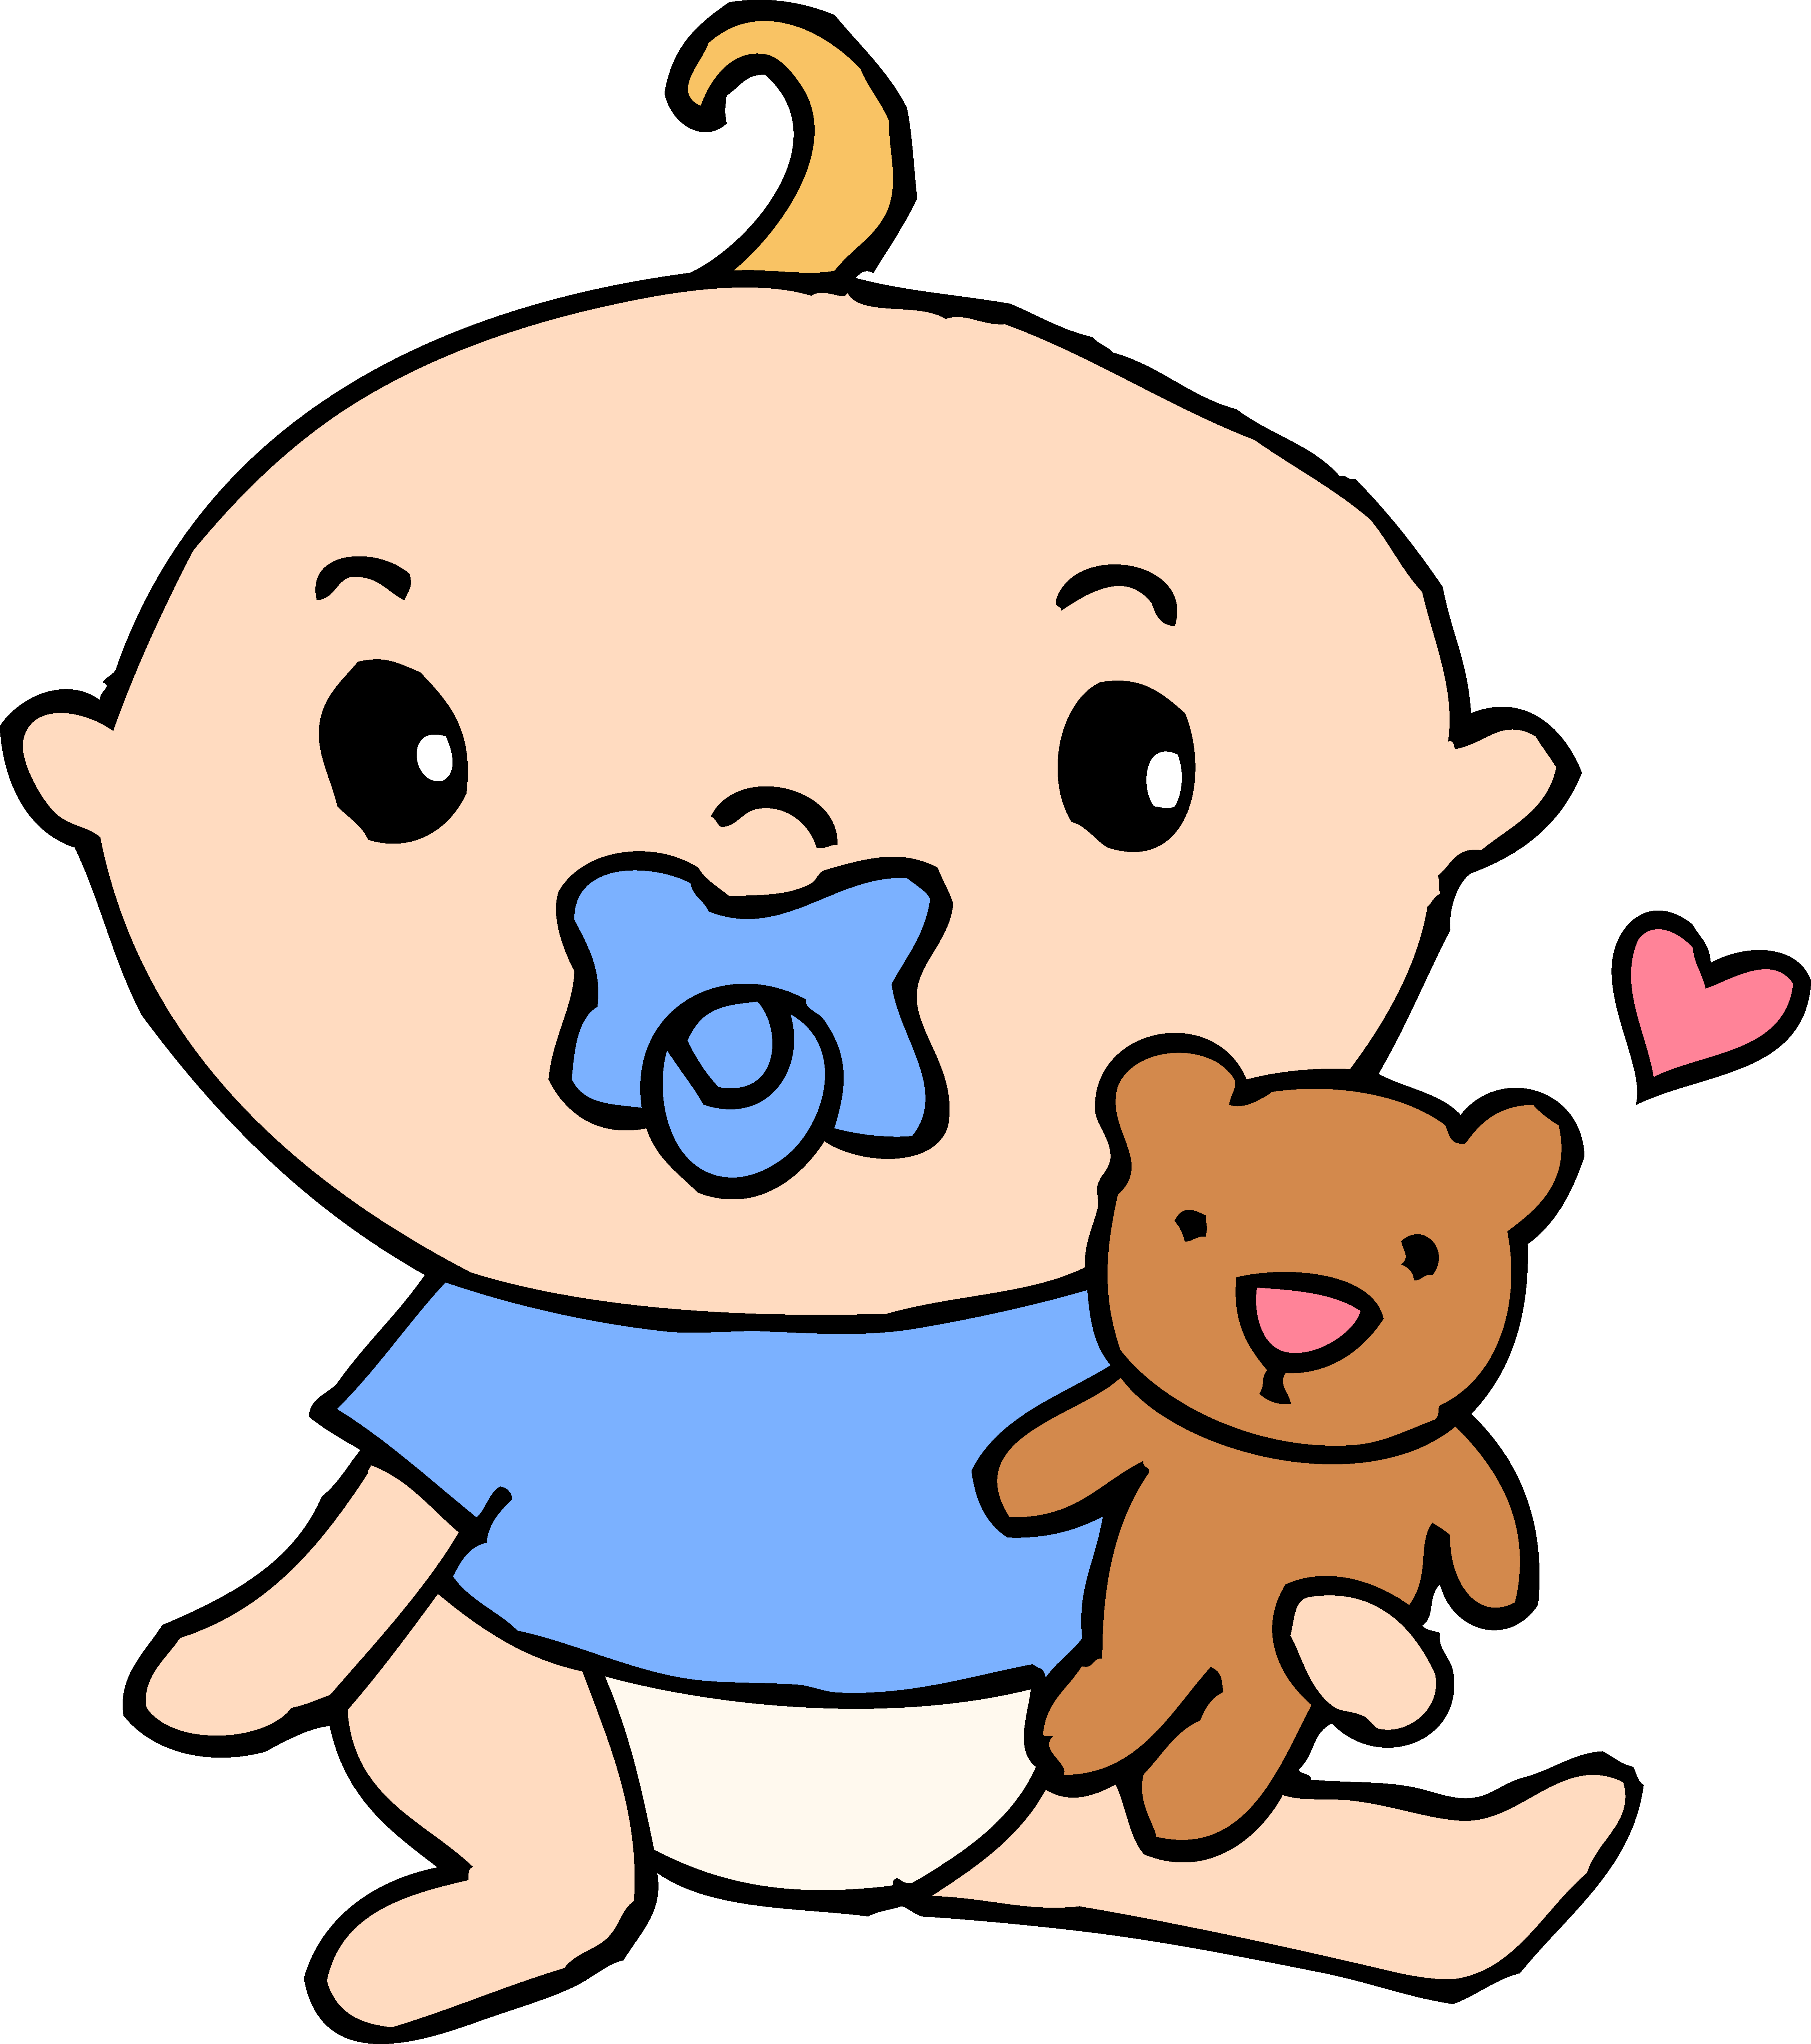 baby superhero clipart clipart panda free clipart images babies clip art fishing quoates babies clipart free